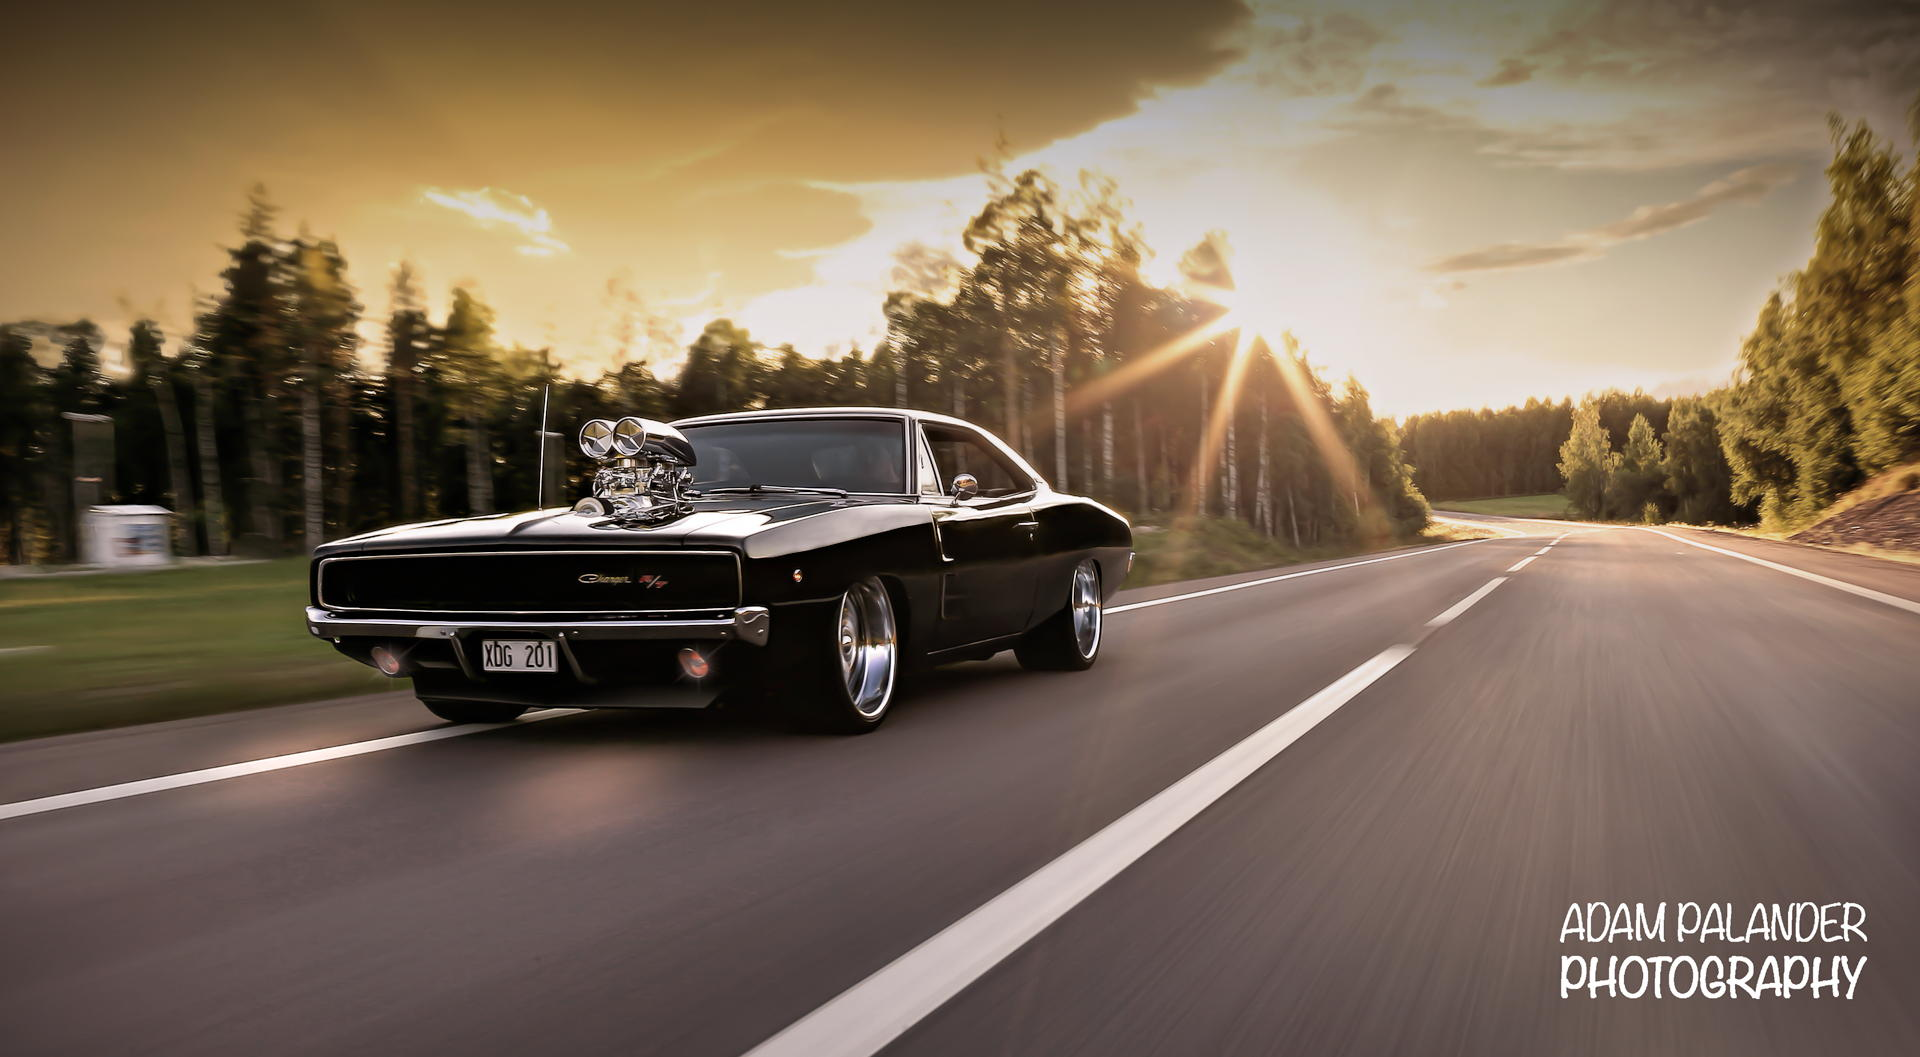 Sports Cars Images 1968 Dodge Charger Hd Wallpaper And Background